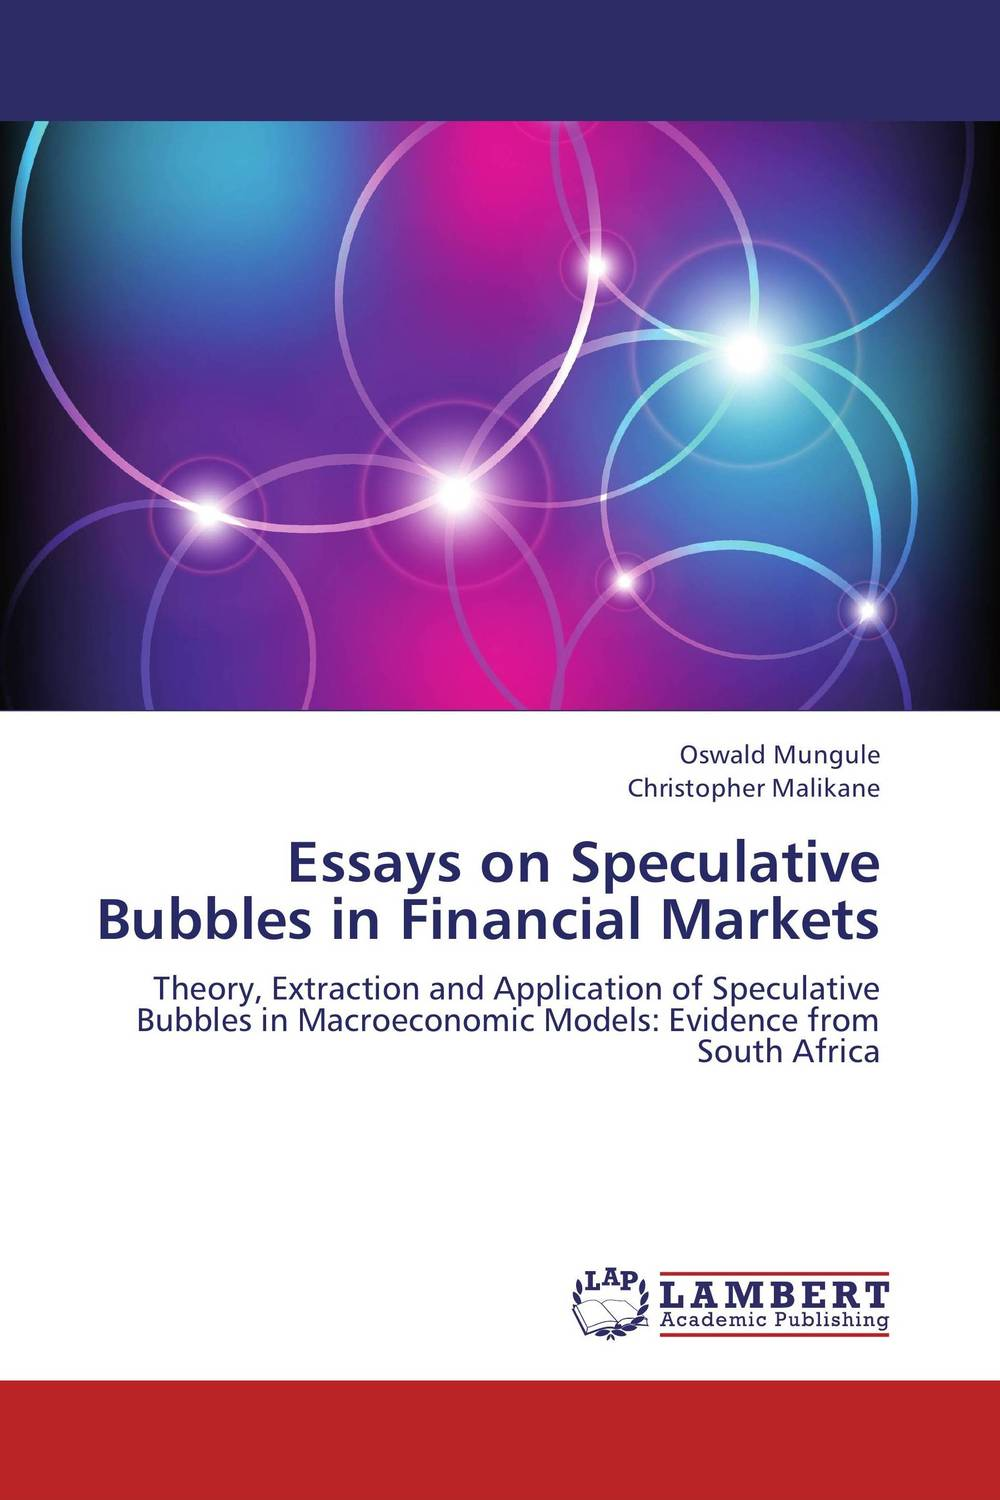 Essays on Speculative Bubbles in Financial Markets rifki ismal islamic banking in indonesia new perspectives on monetary and financial issues